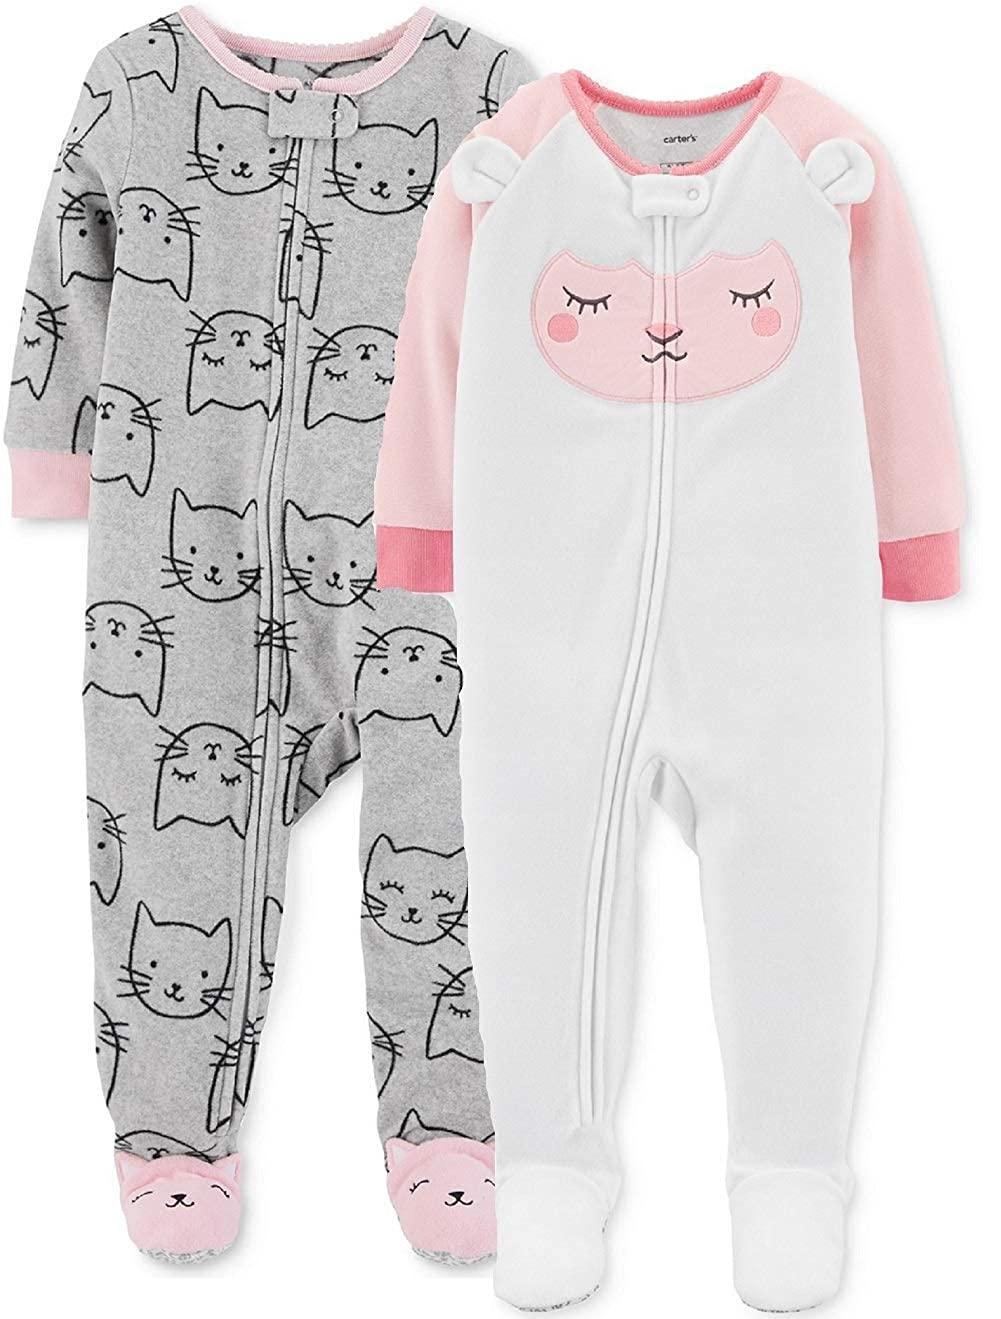 ab9e776b111e Amazon.com  Carter s Baby and Toddler Girls  2-Pack Fleece Footed ...